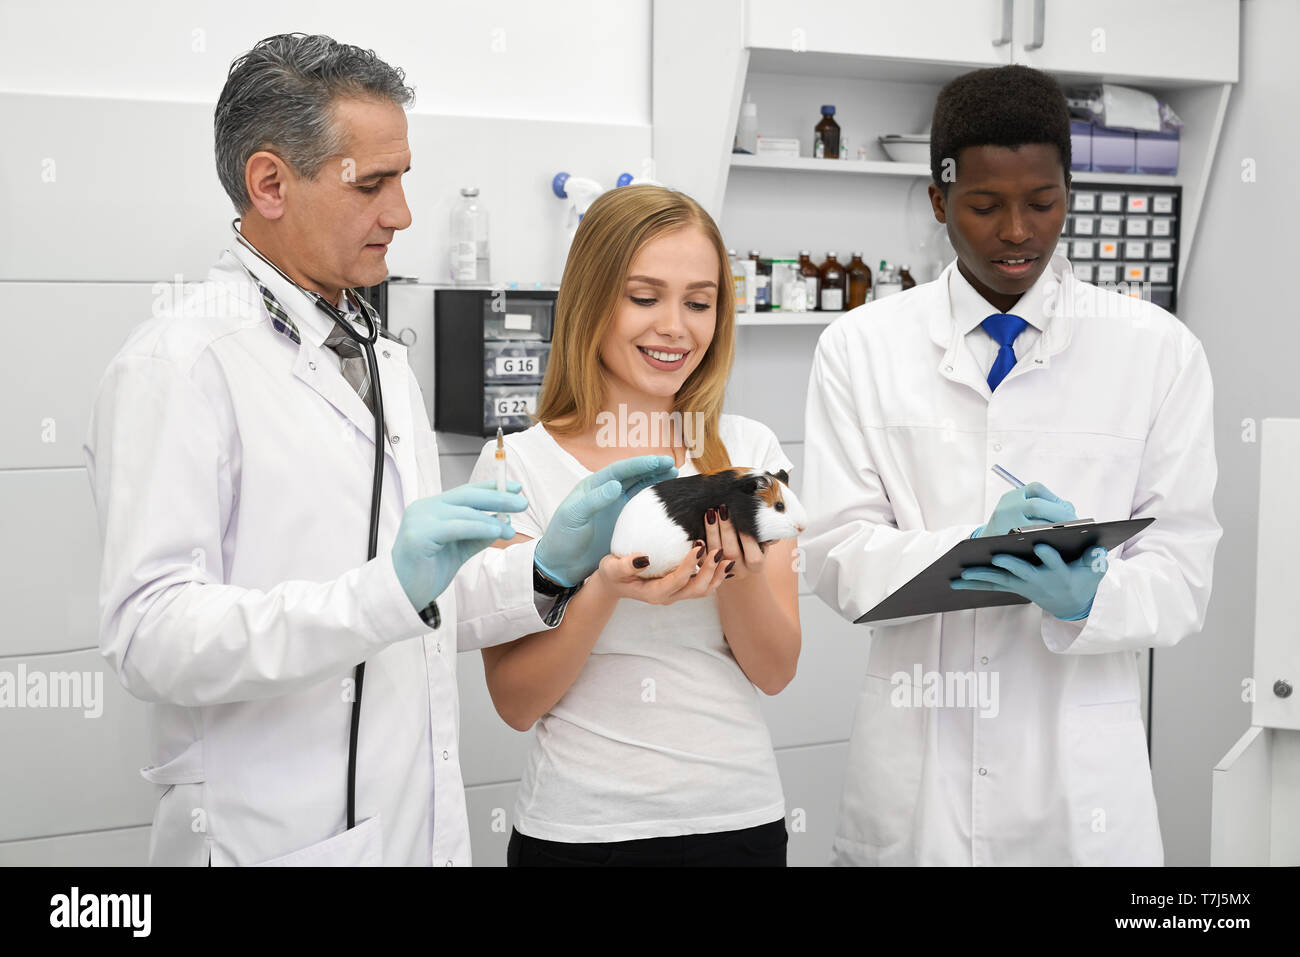 Professional veterinarian doing injection, using needle whlile beautiful woman holding hamster in hands. African young assistant writing in folder. Doctors in medical gowns and gloves. - Stock Image